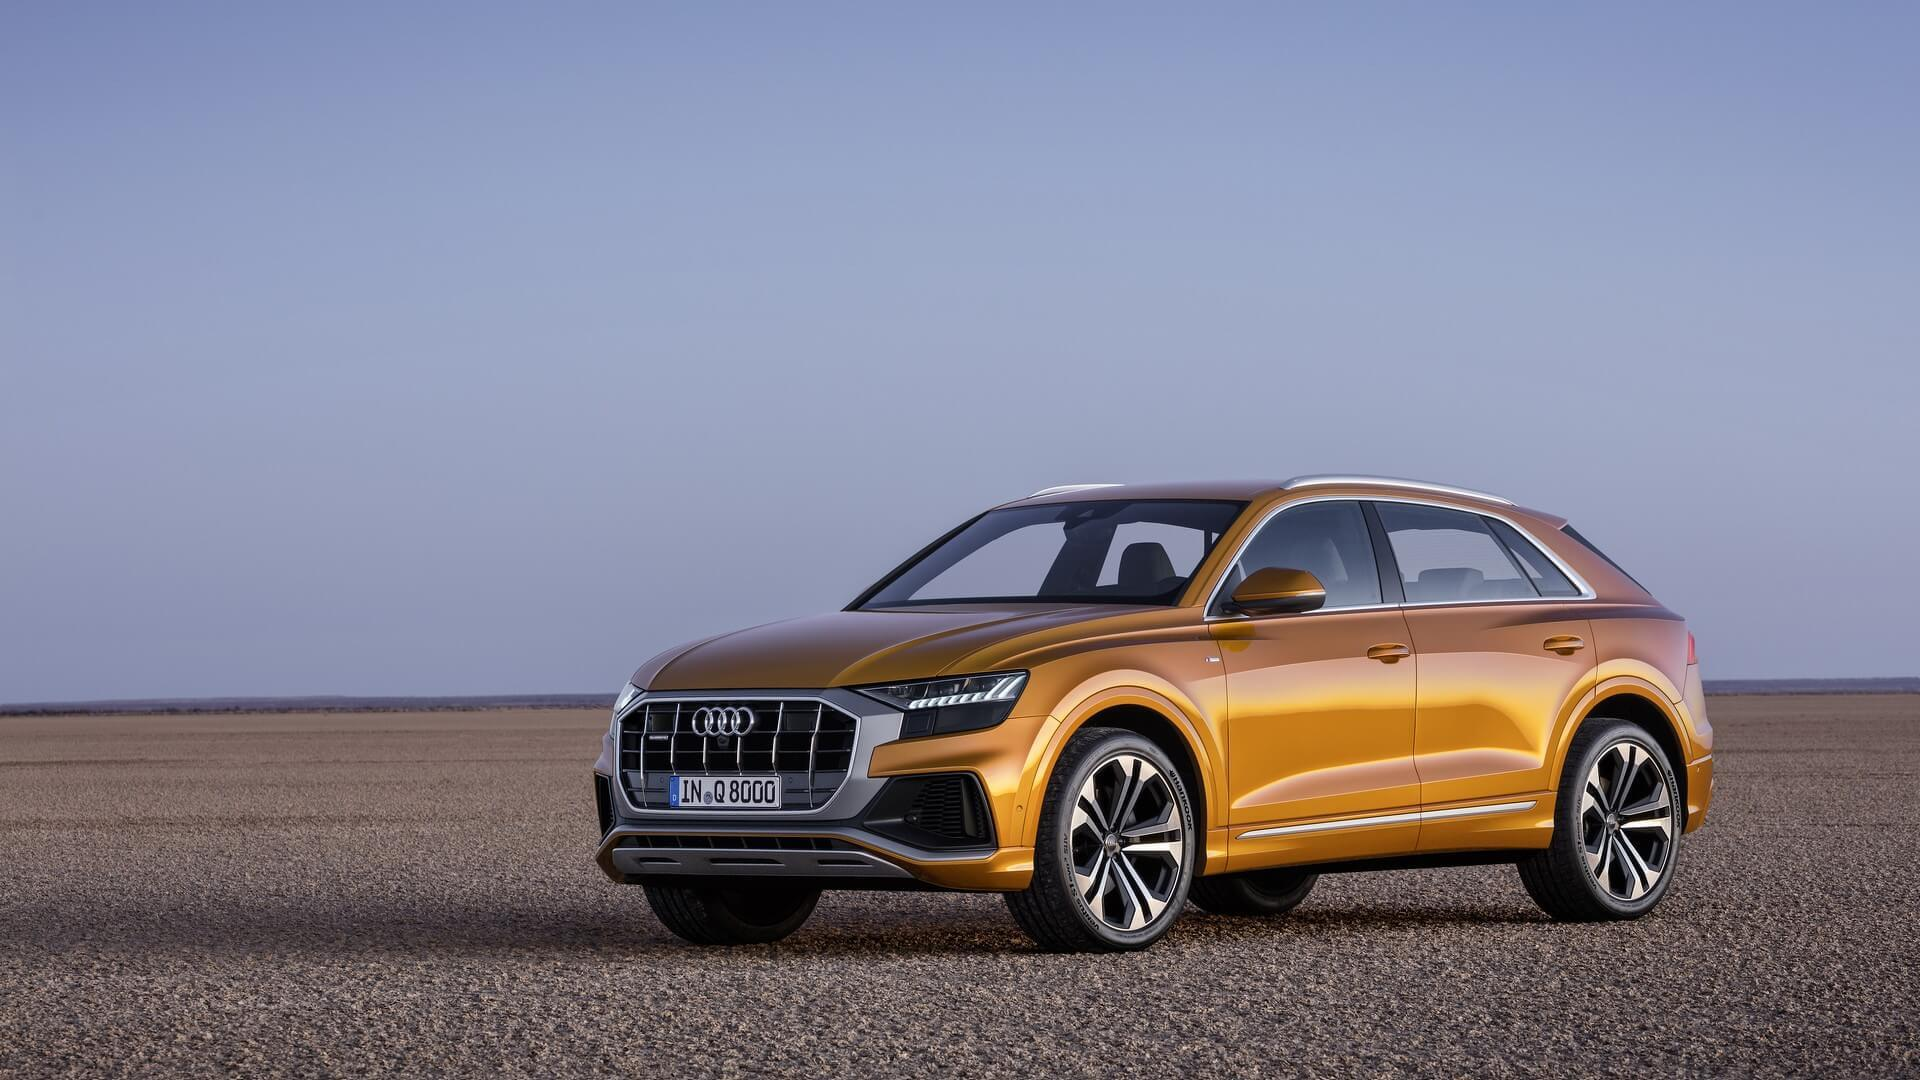 2019 Audi Q8 Priced From 67400 With Mild Hybrid V6 Power